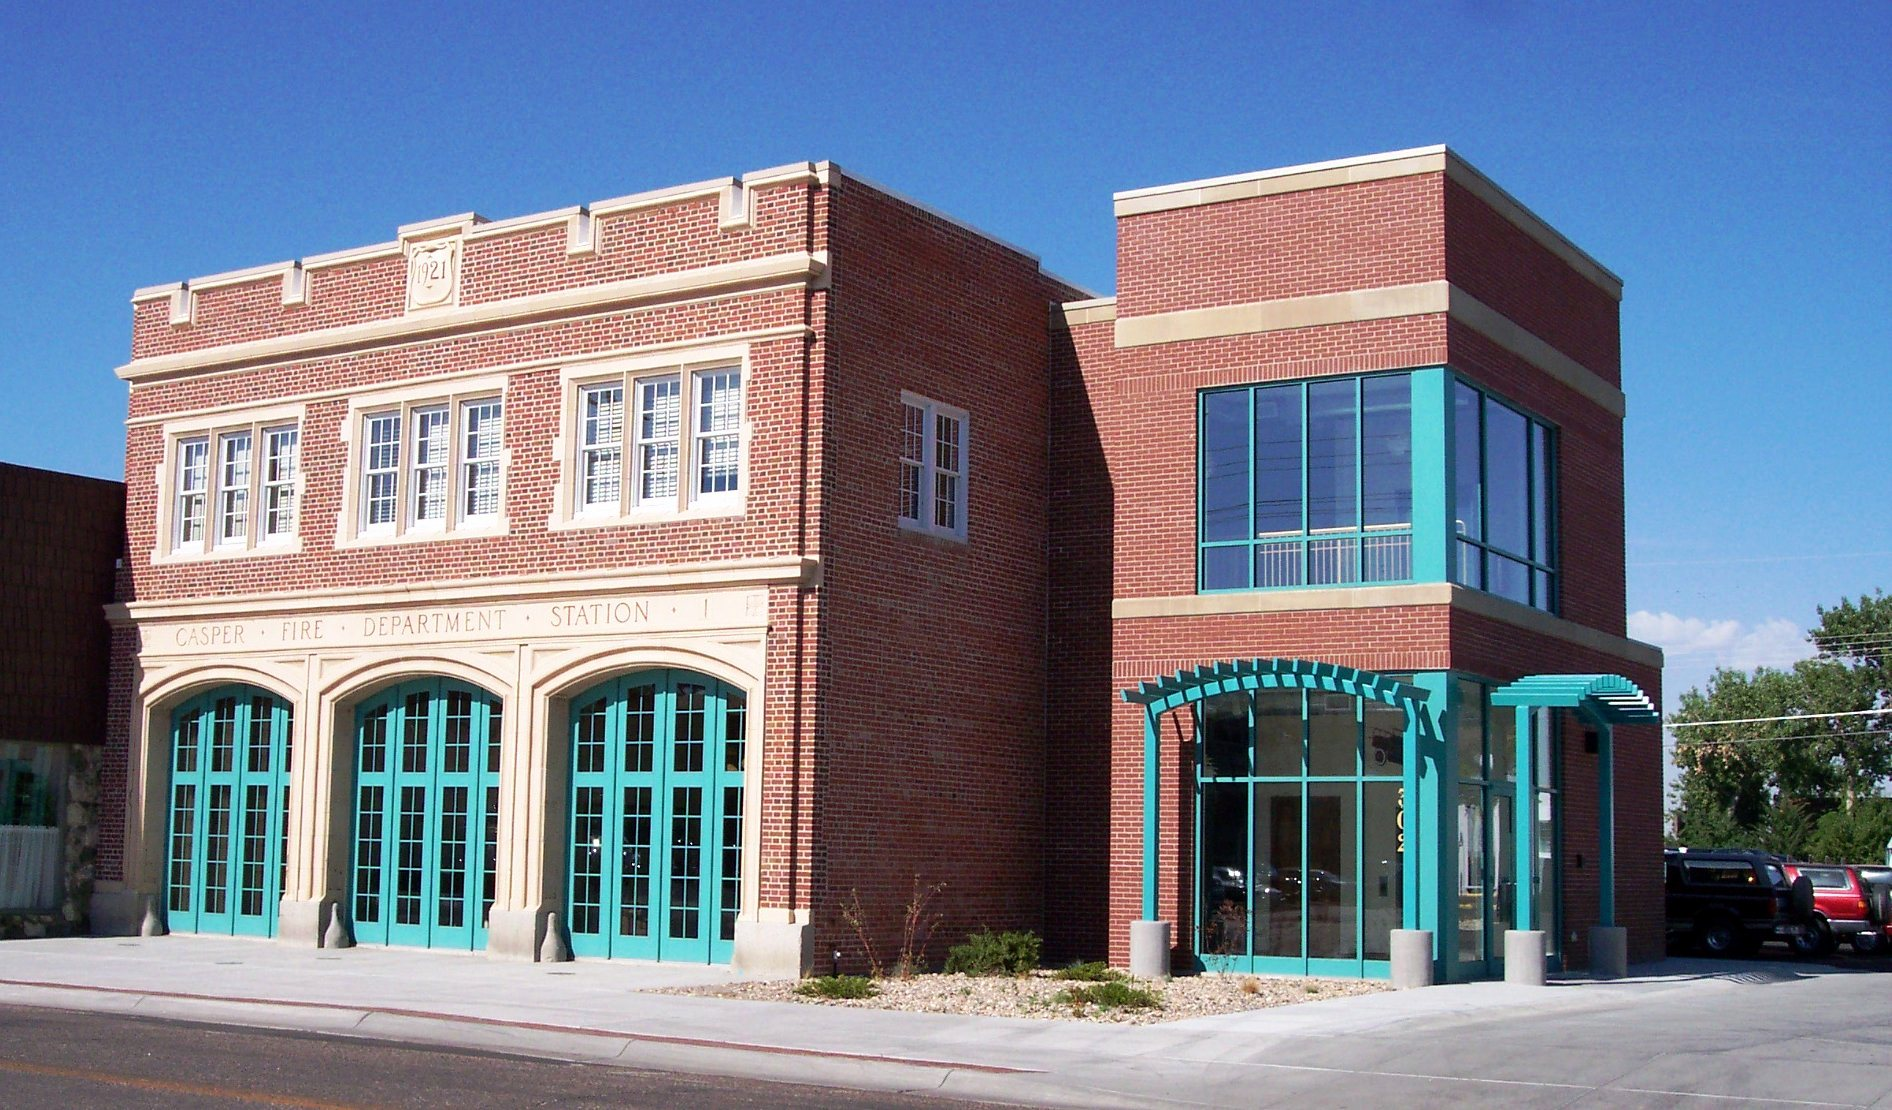 The adaptively reused Casper Fire Station following rehabilitation.